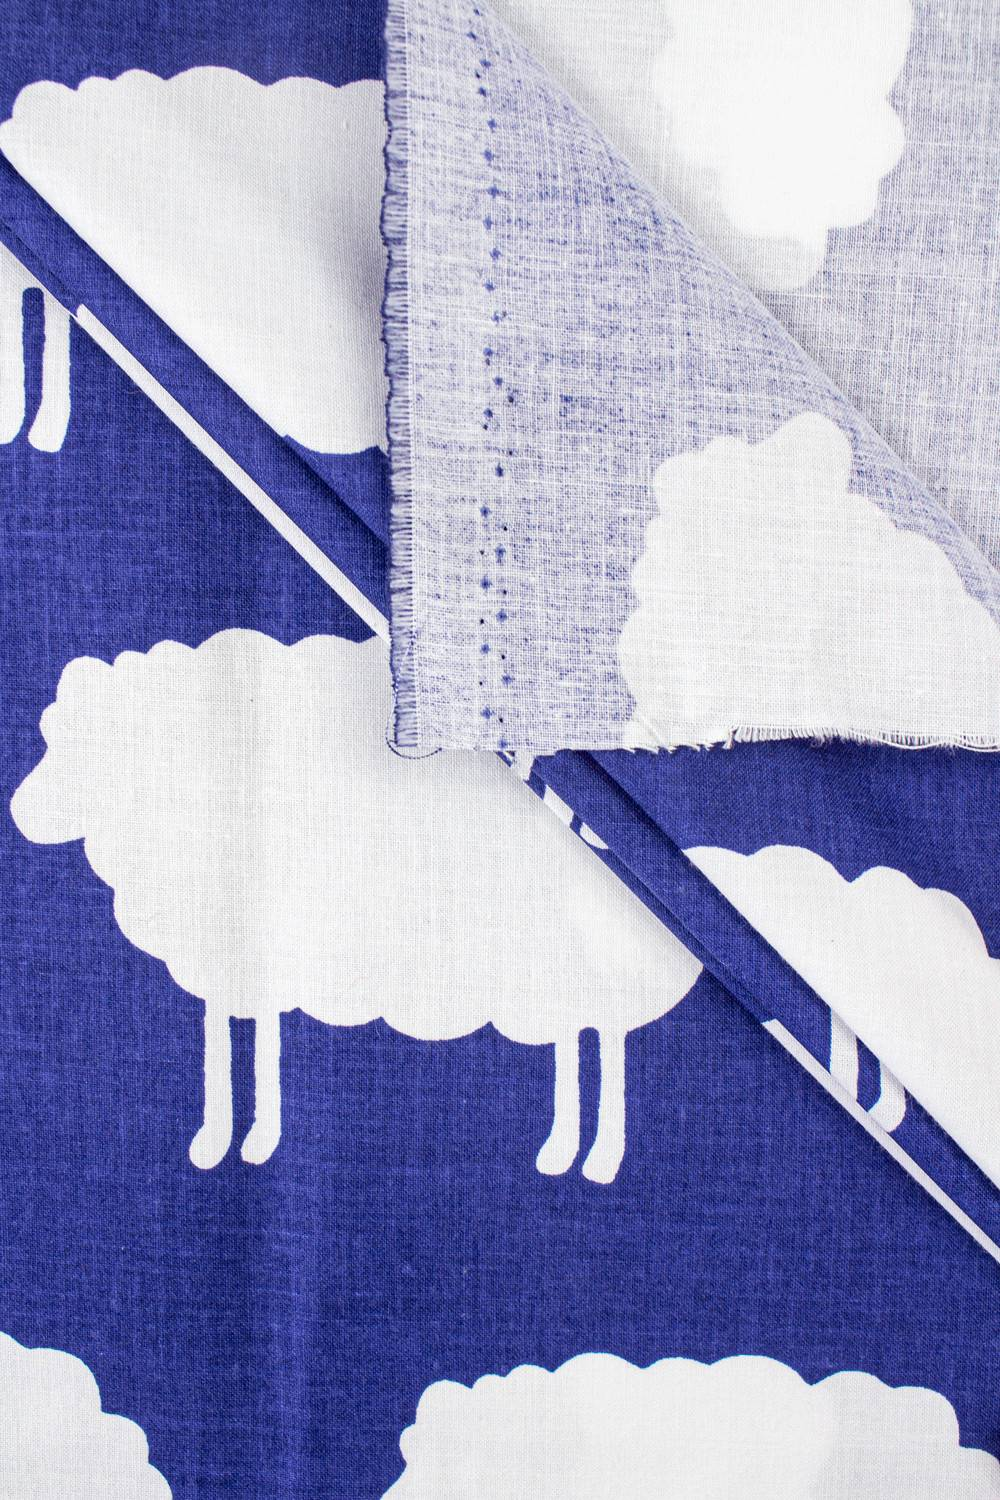 Fabric - Cotton - Blue With Sheep - 160 cm - 130 g/m2